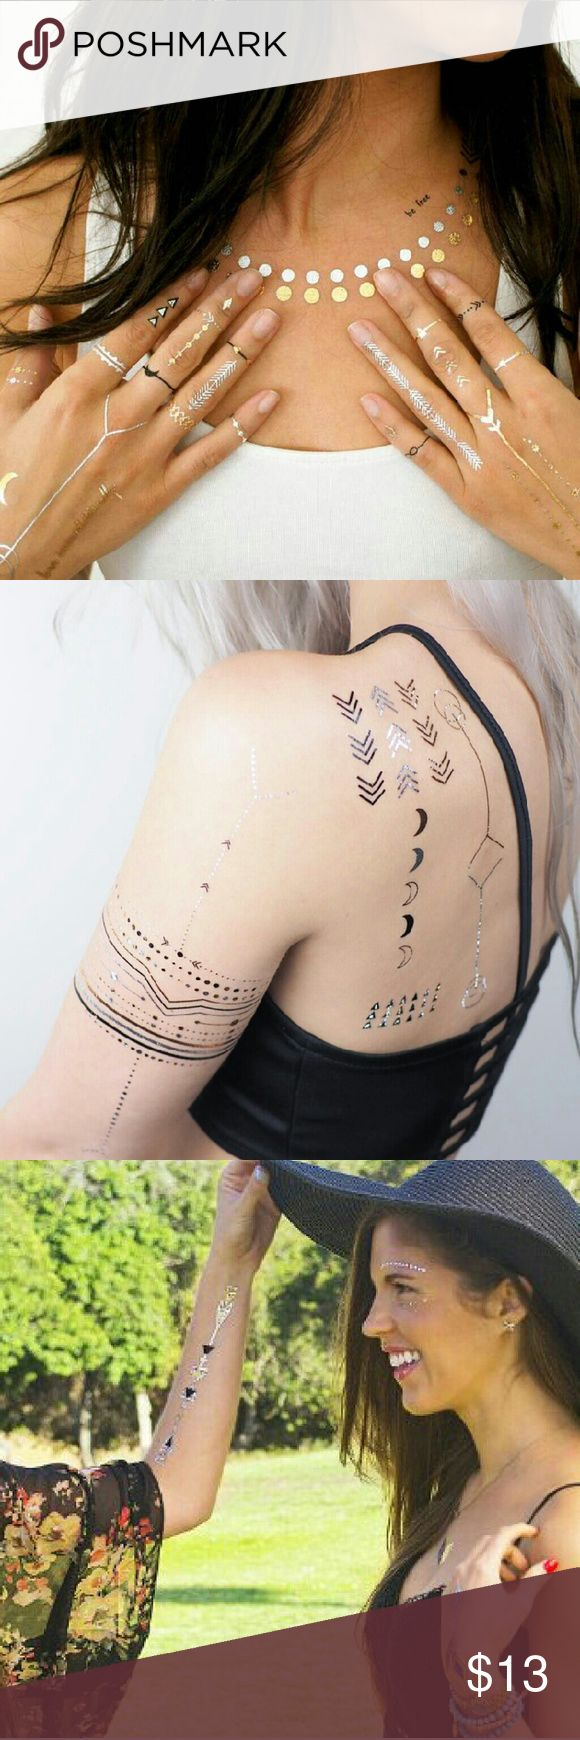 Celestial Alignment Metallic Tattoo Stellar Symbols, Arrows to Point the Way. GOLD, SILVER, BLACK & BLUE; Moons, Spheres, Arrow Marks & Arrows, Prisms, Dotted & Solid Lines. Create Your Own Tat Design for Face, Arms, Torso , Feet, etc. KITSCH Makeup